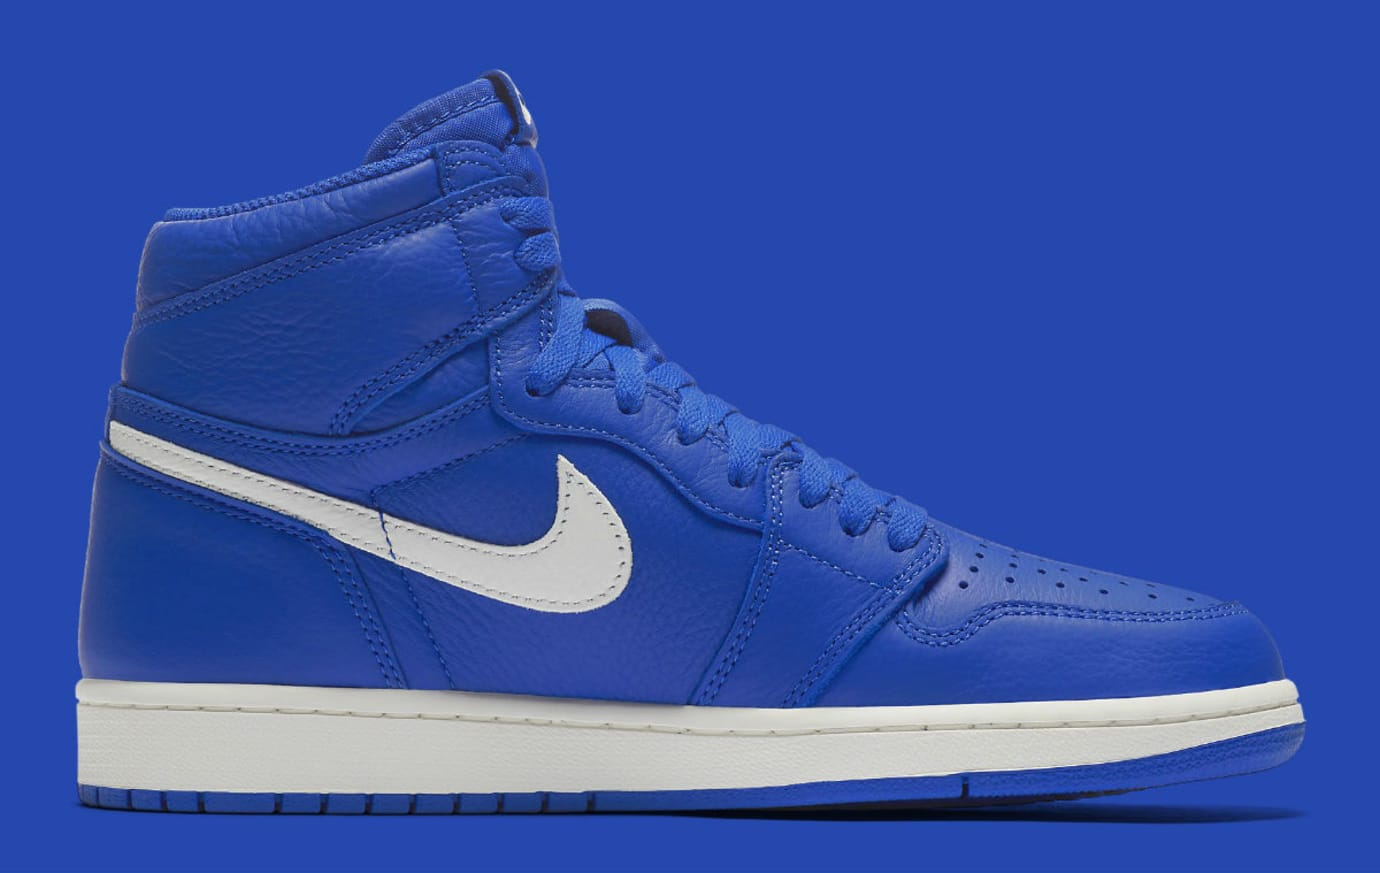 70fec61bf4057a Image via Nike Air Jordan 1 He Got Game Hyper Royal Release Date 555088-401  Medial